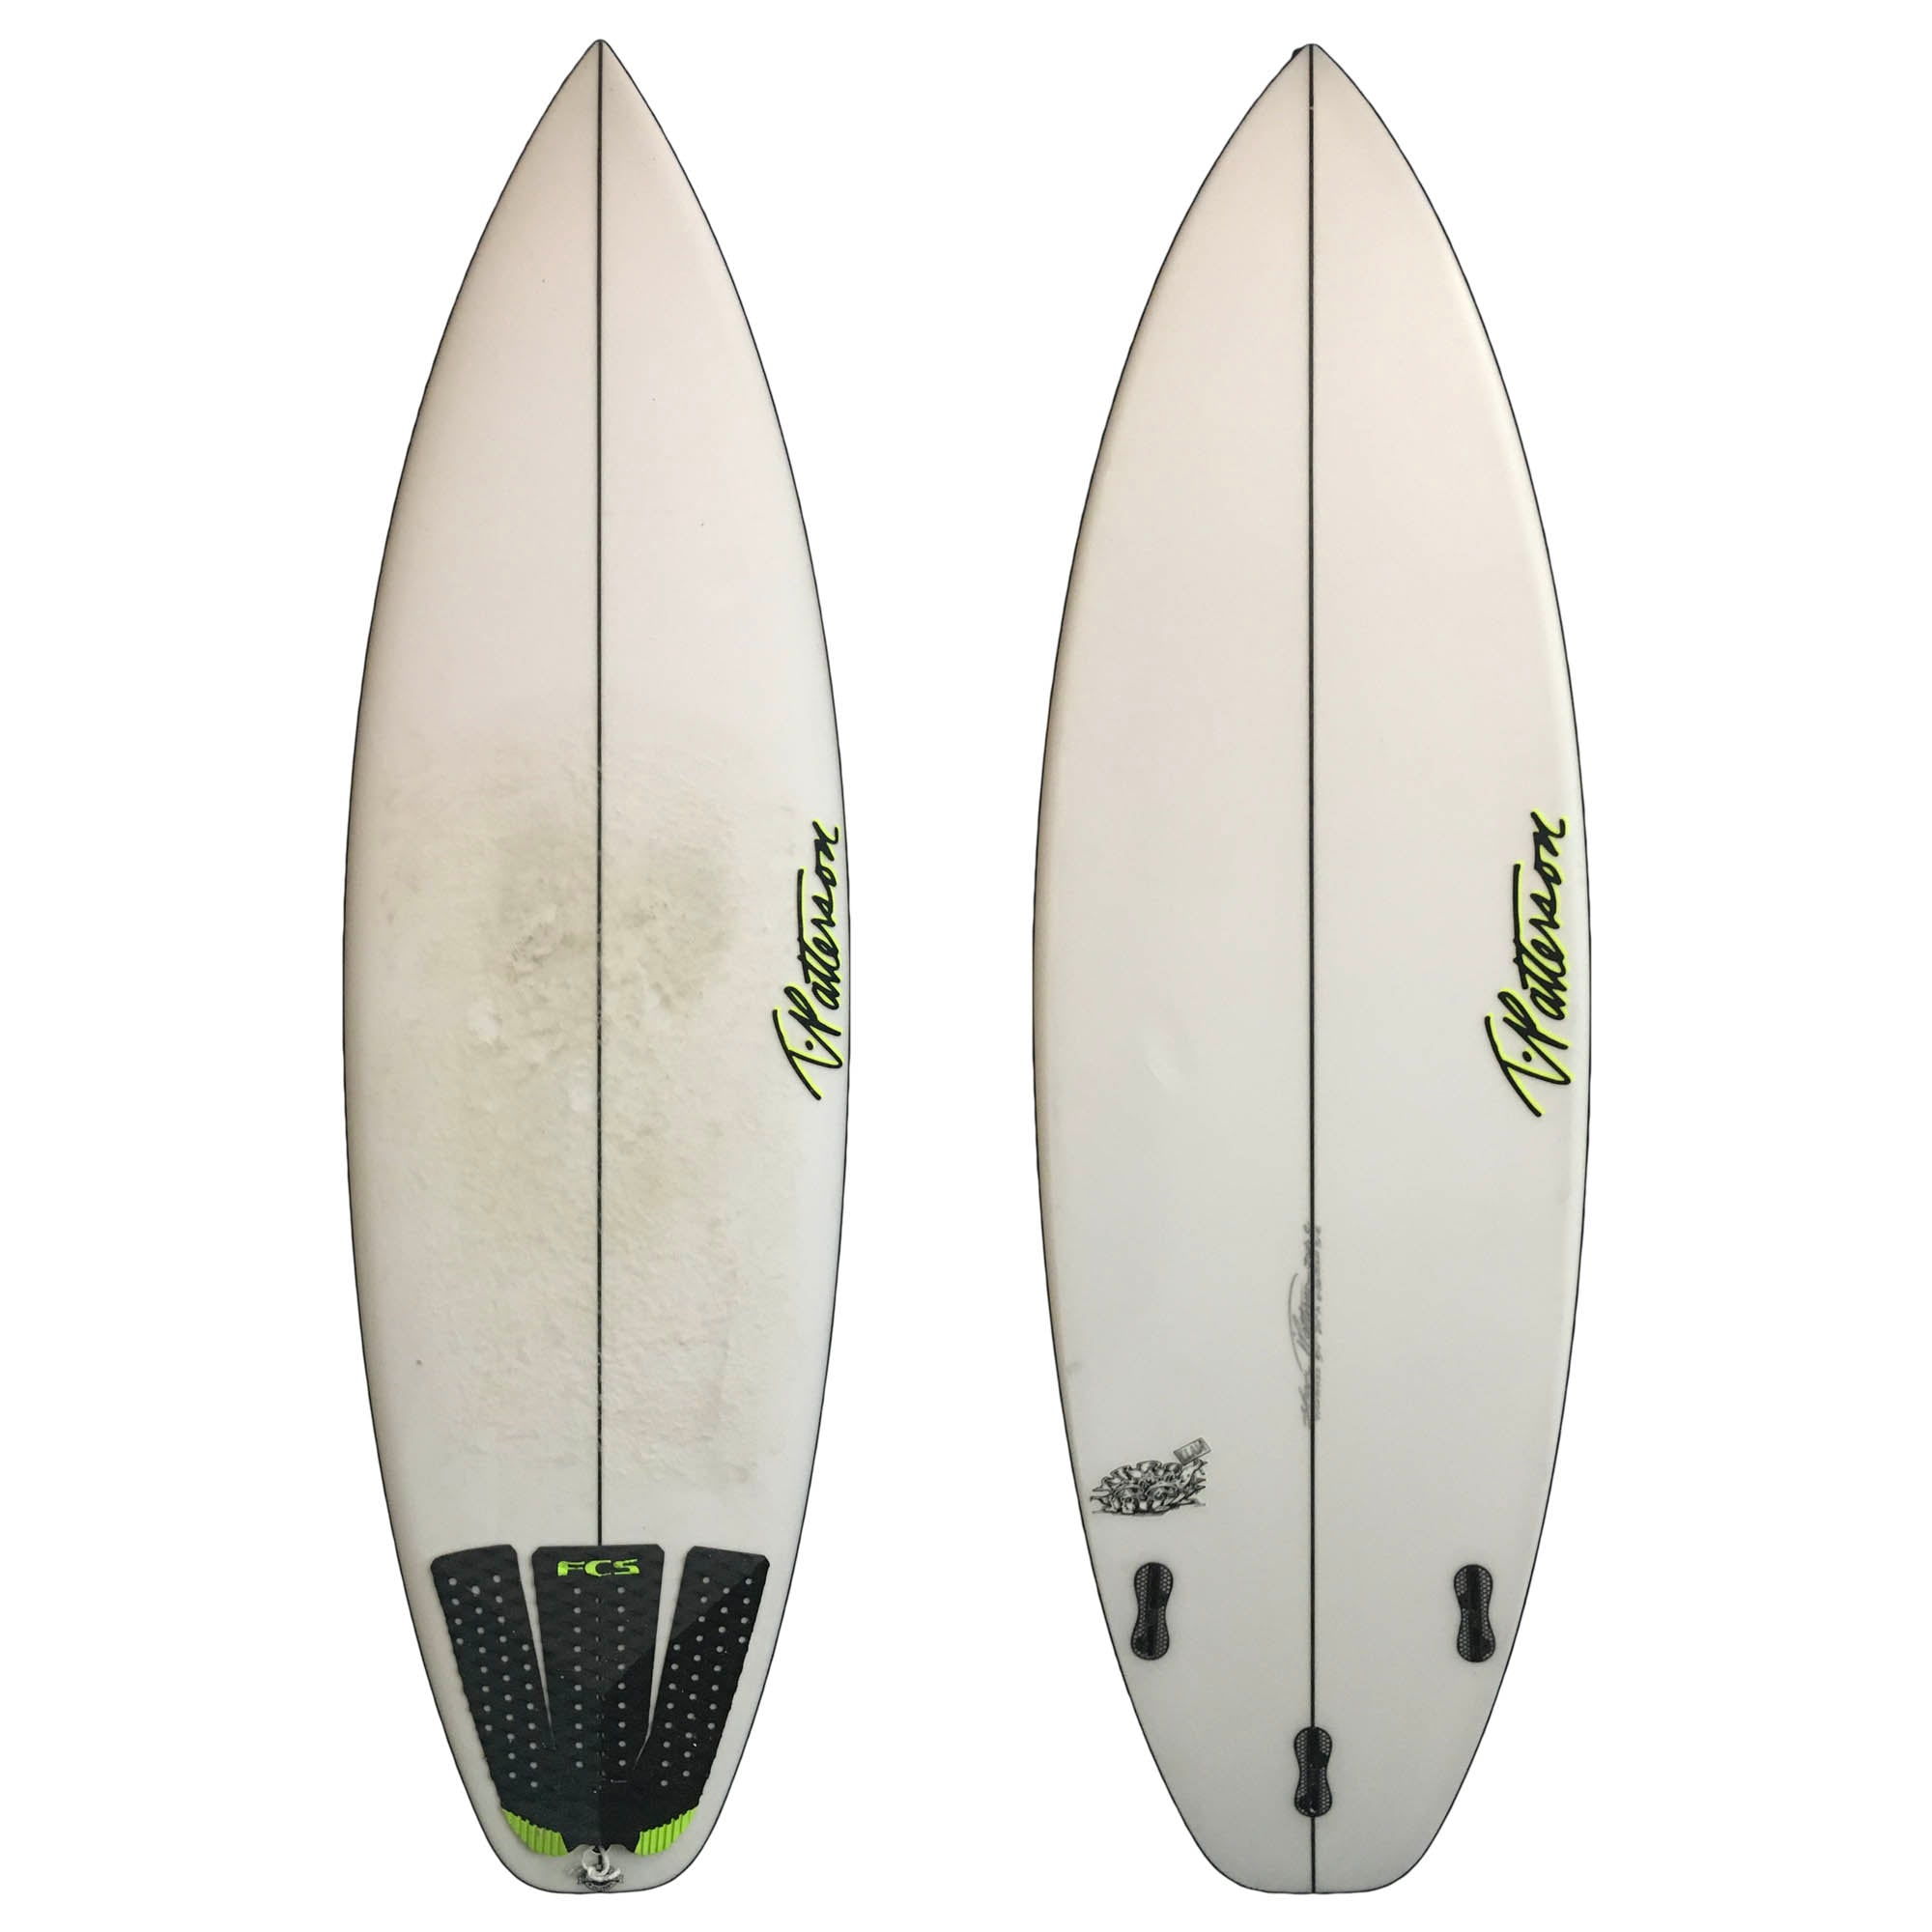 T. Patterson Clam 5'11 Used Surfboard